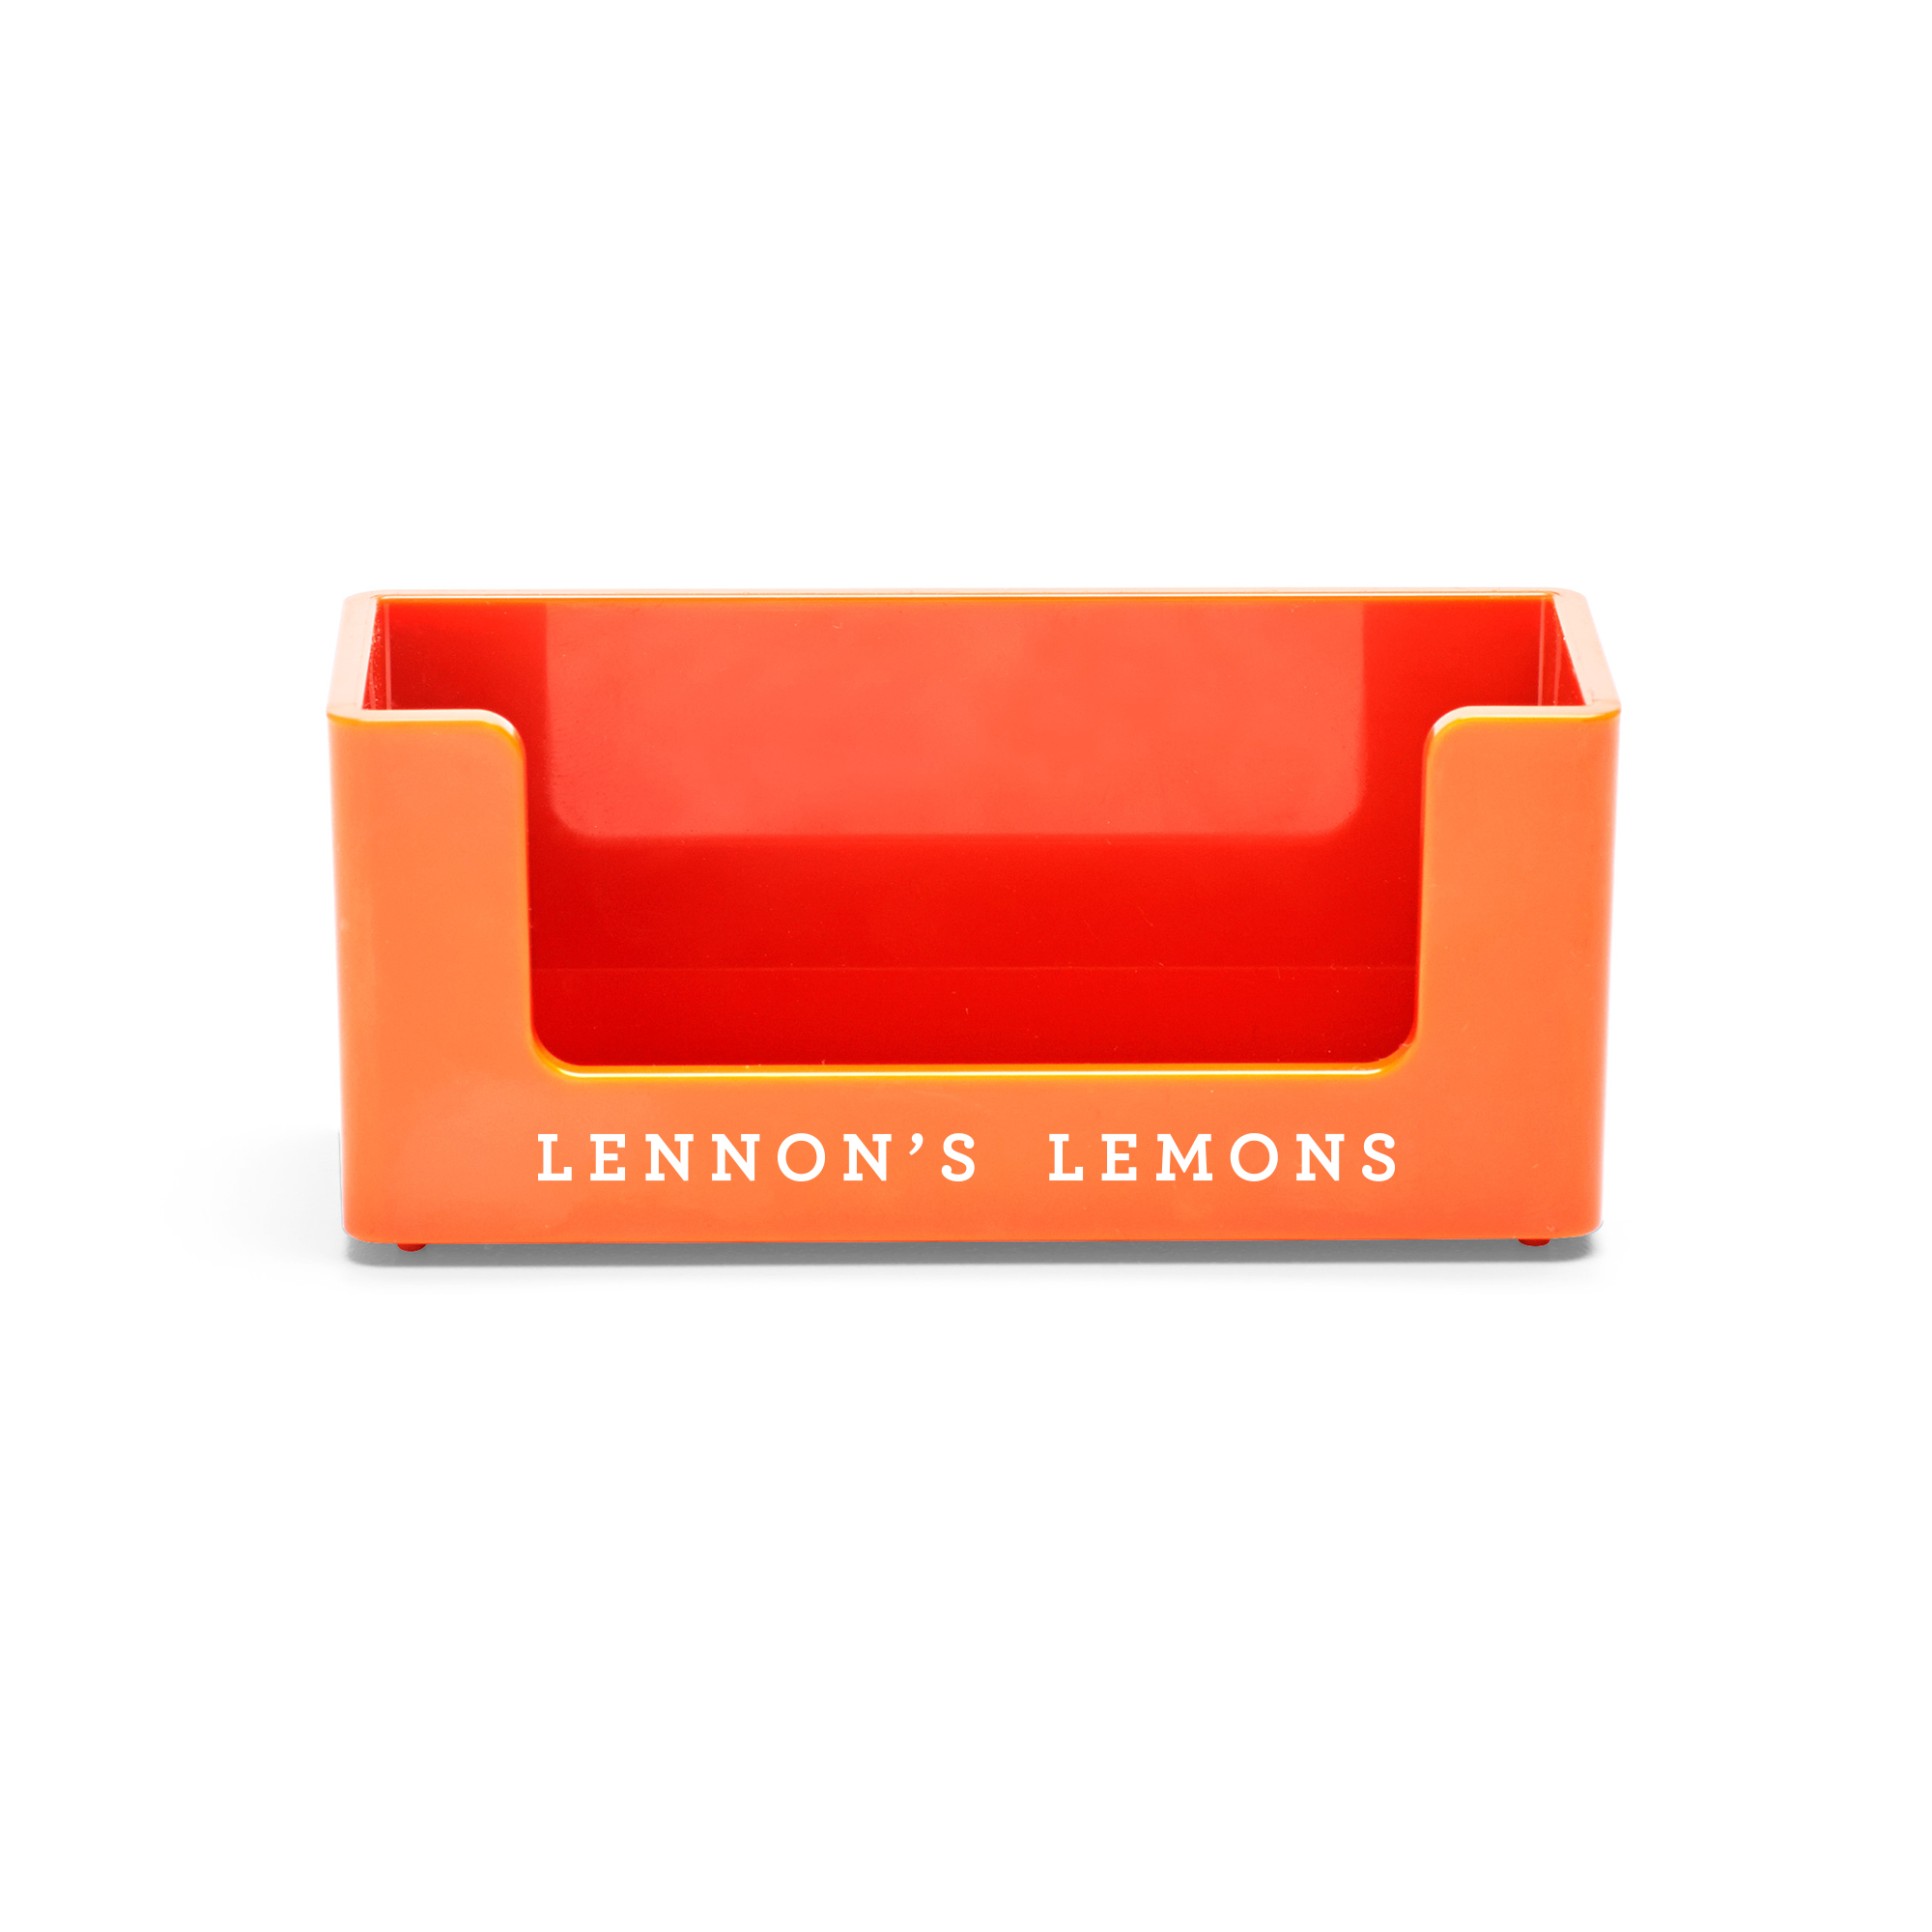 Custom orange business card holder desk accessories poppin custom orange business card holderorangehi res colourmoves